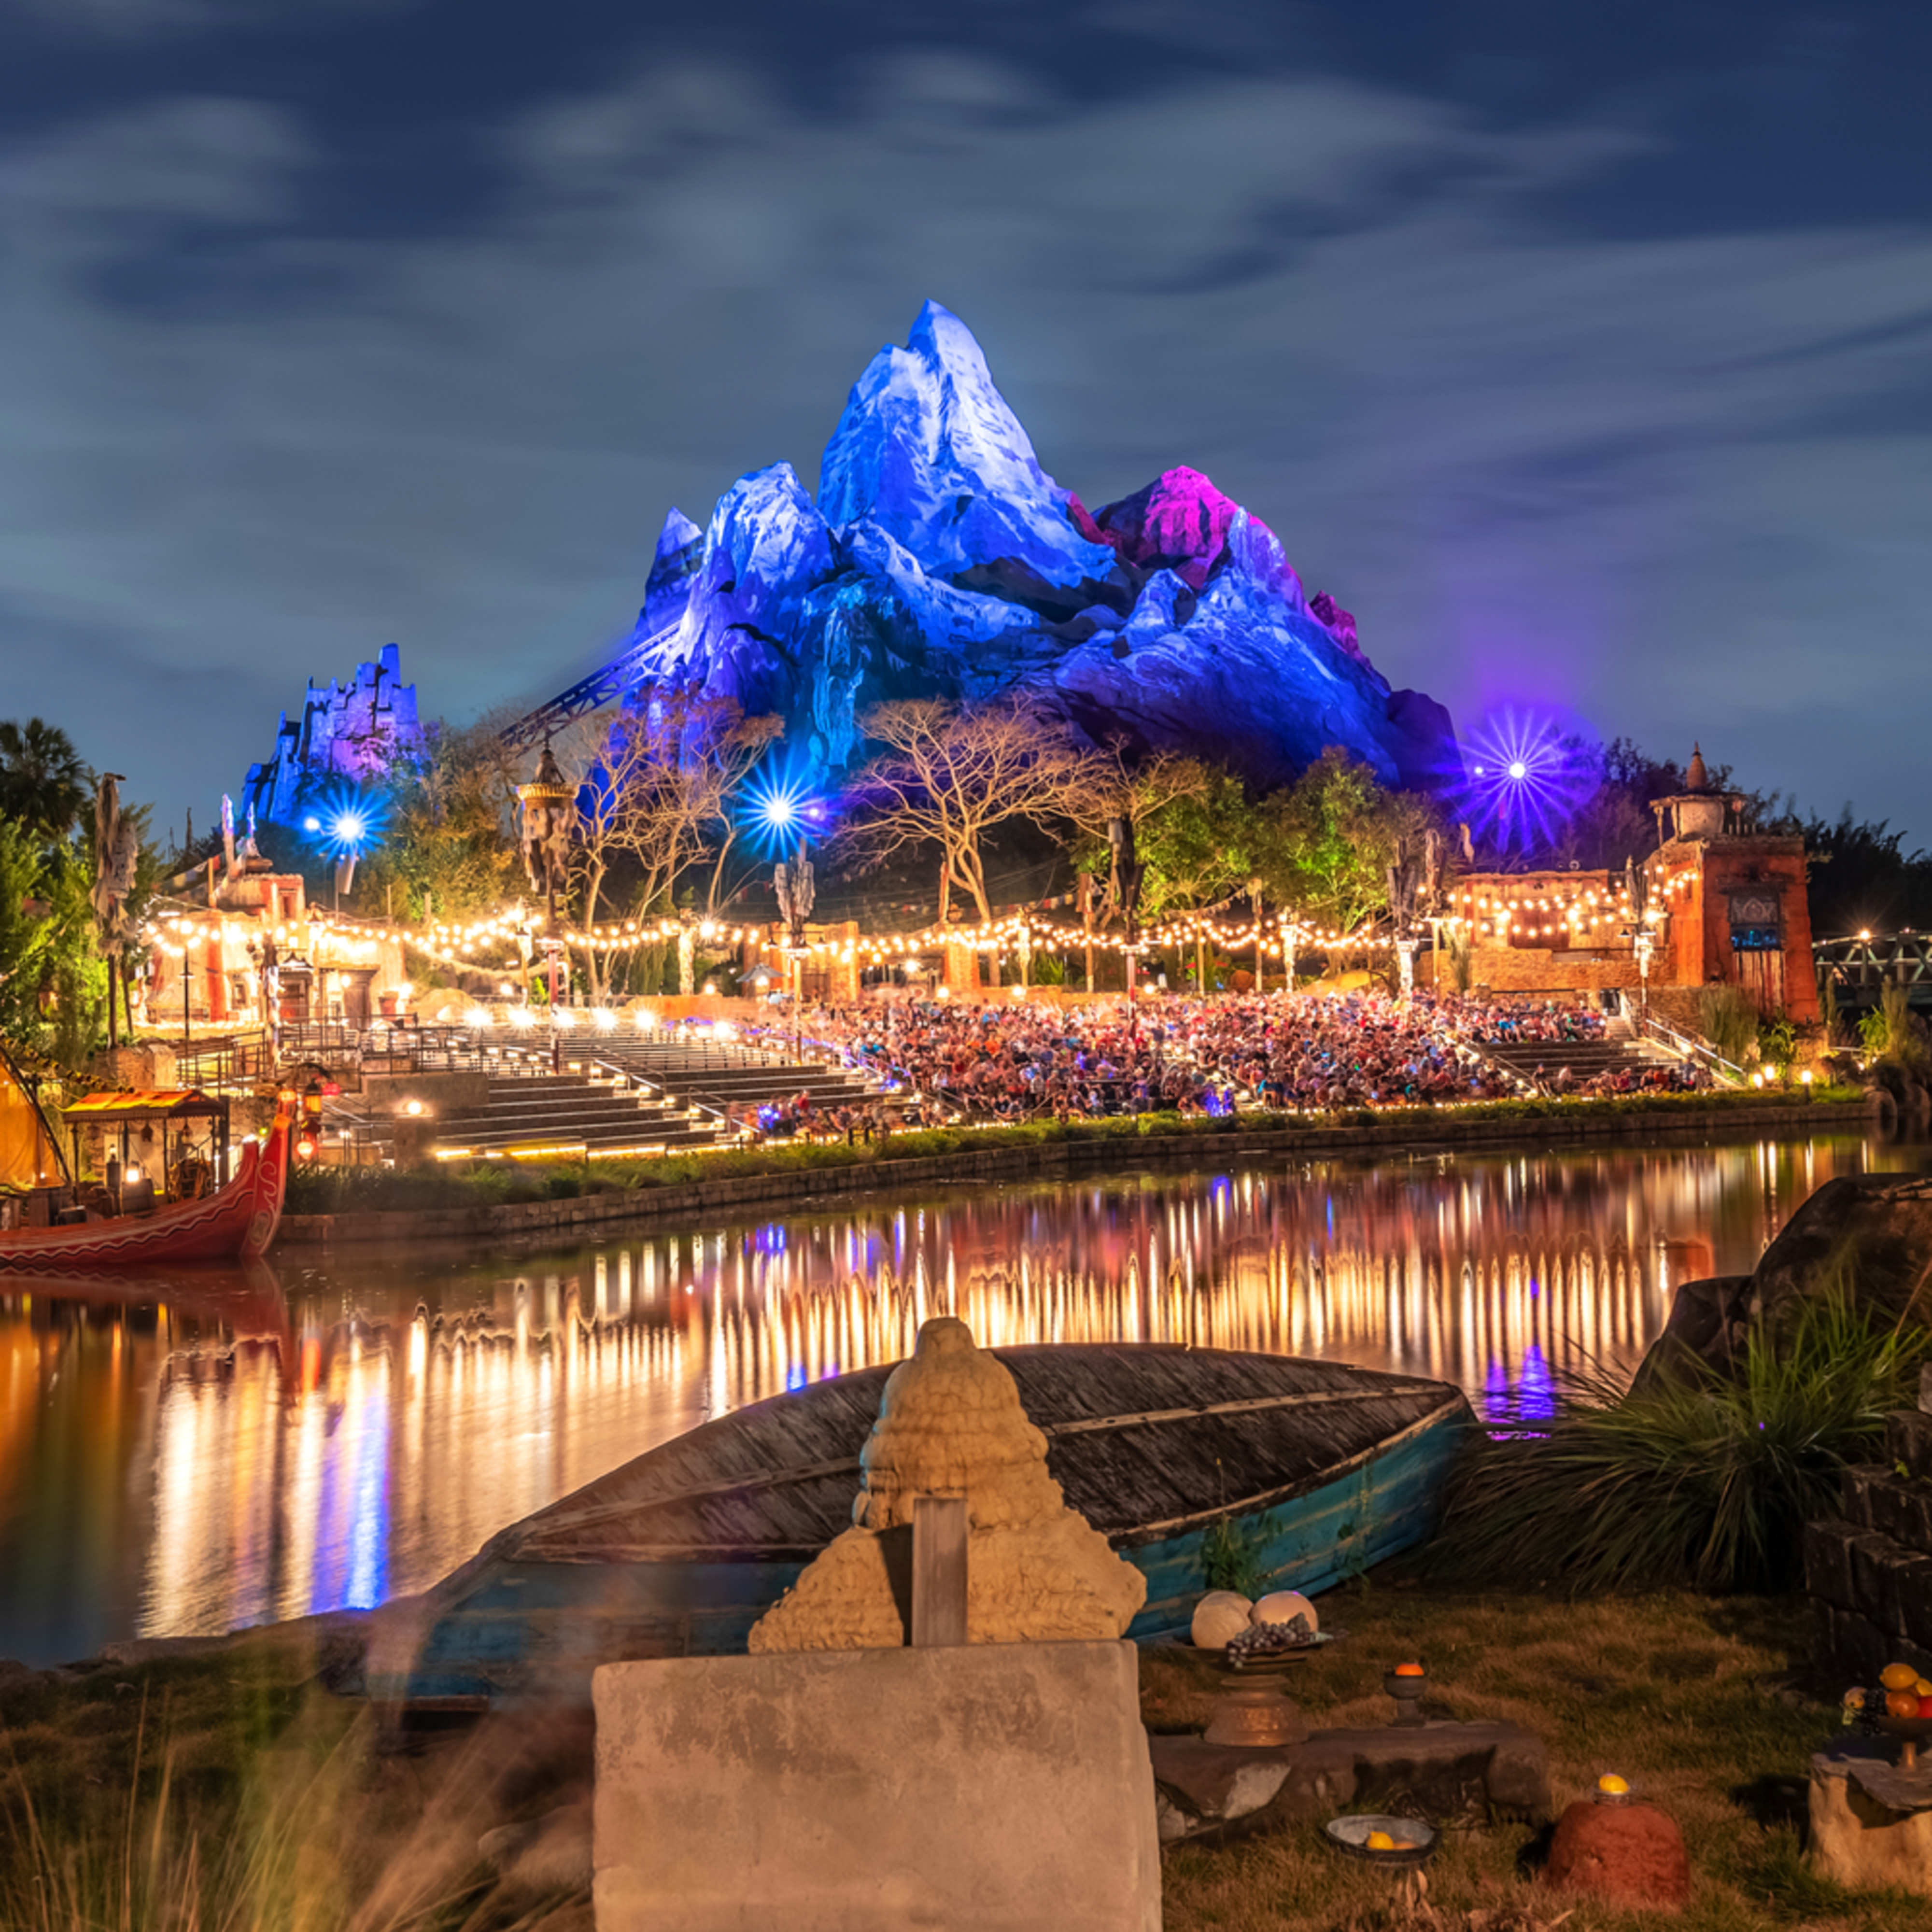 Expedition everest reflections gf172v